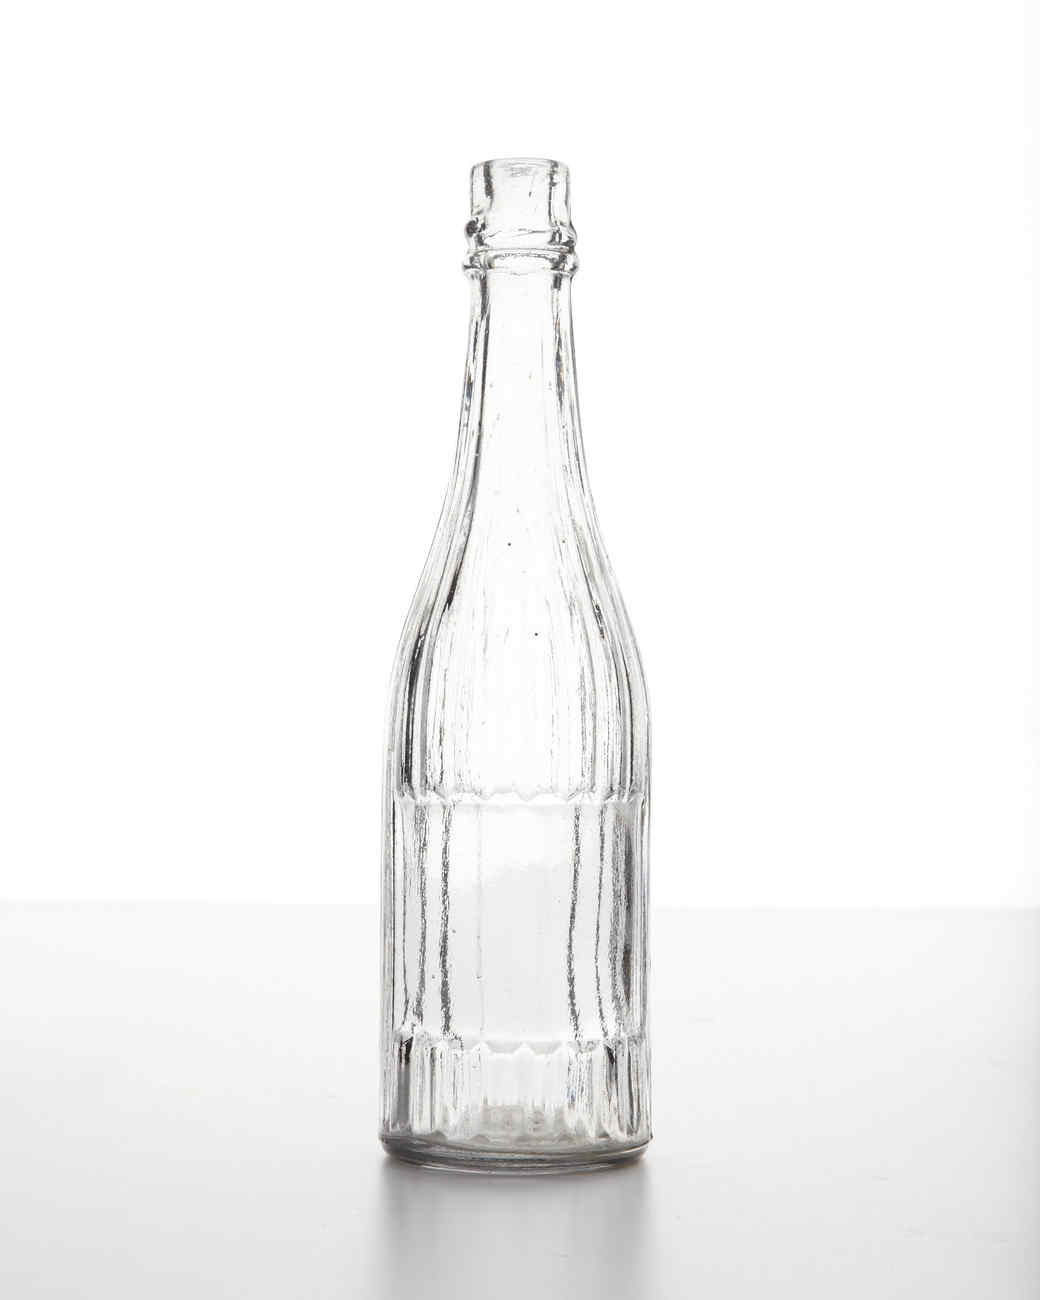 ld105857_0810_bottle_264.jpg